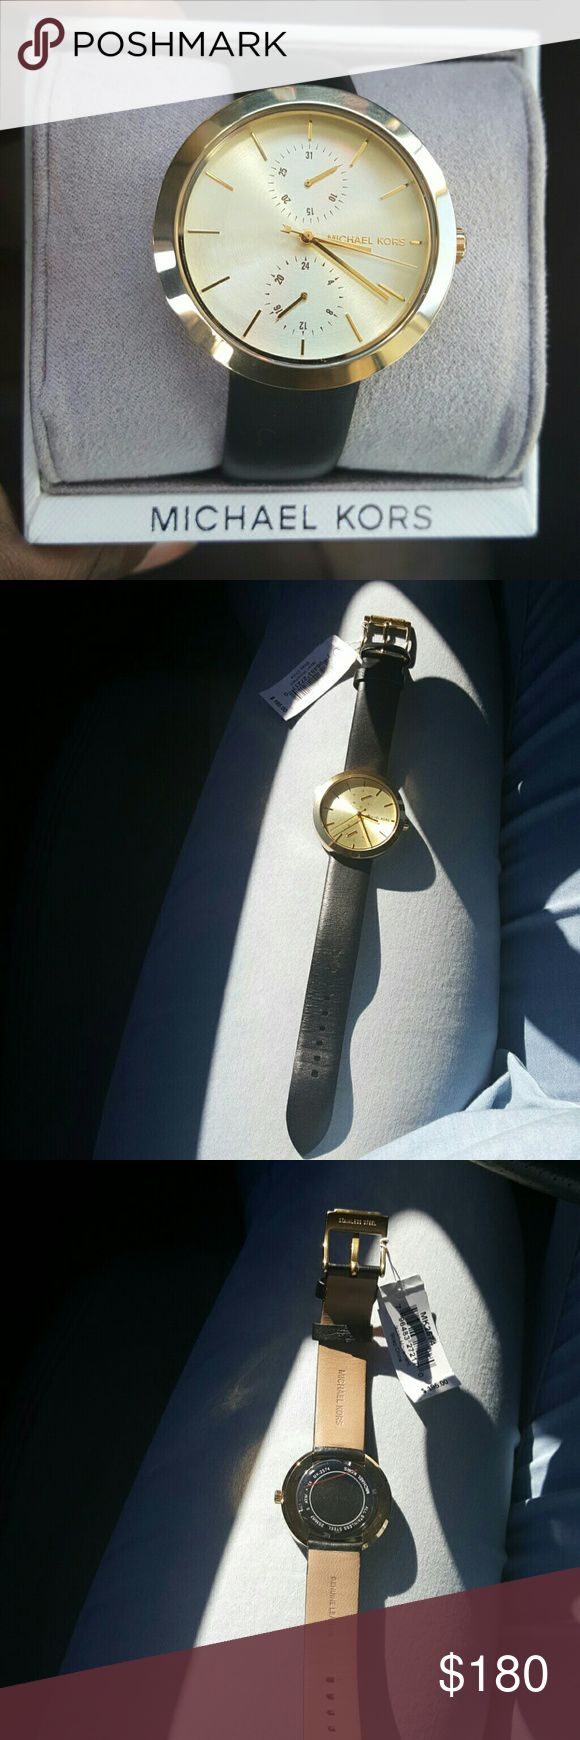 """NEW💎MICHAEL KORS GARNER GOLD WATCH """"PRICE IS FRIM """"  💯AUTHENTIC  New Never Worn  MICHAEL KORS  GOLD FACE WATCH with a GENUINE LEATHER BLACK.  THIS A WATCH THAT GOES WITH EVERYTHING!!!  JUST BEAUTIFUL....  Comes with original box Michael Kors Accessories Watches"""